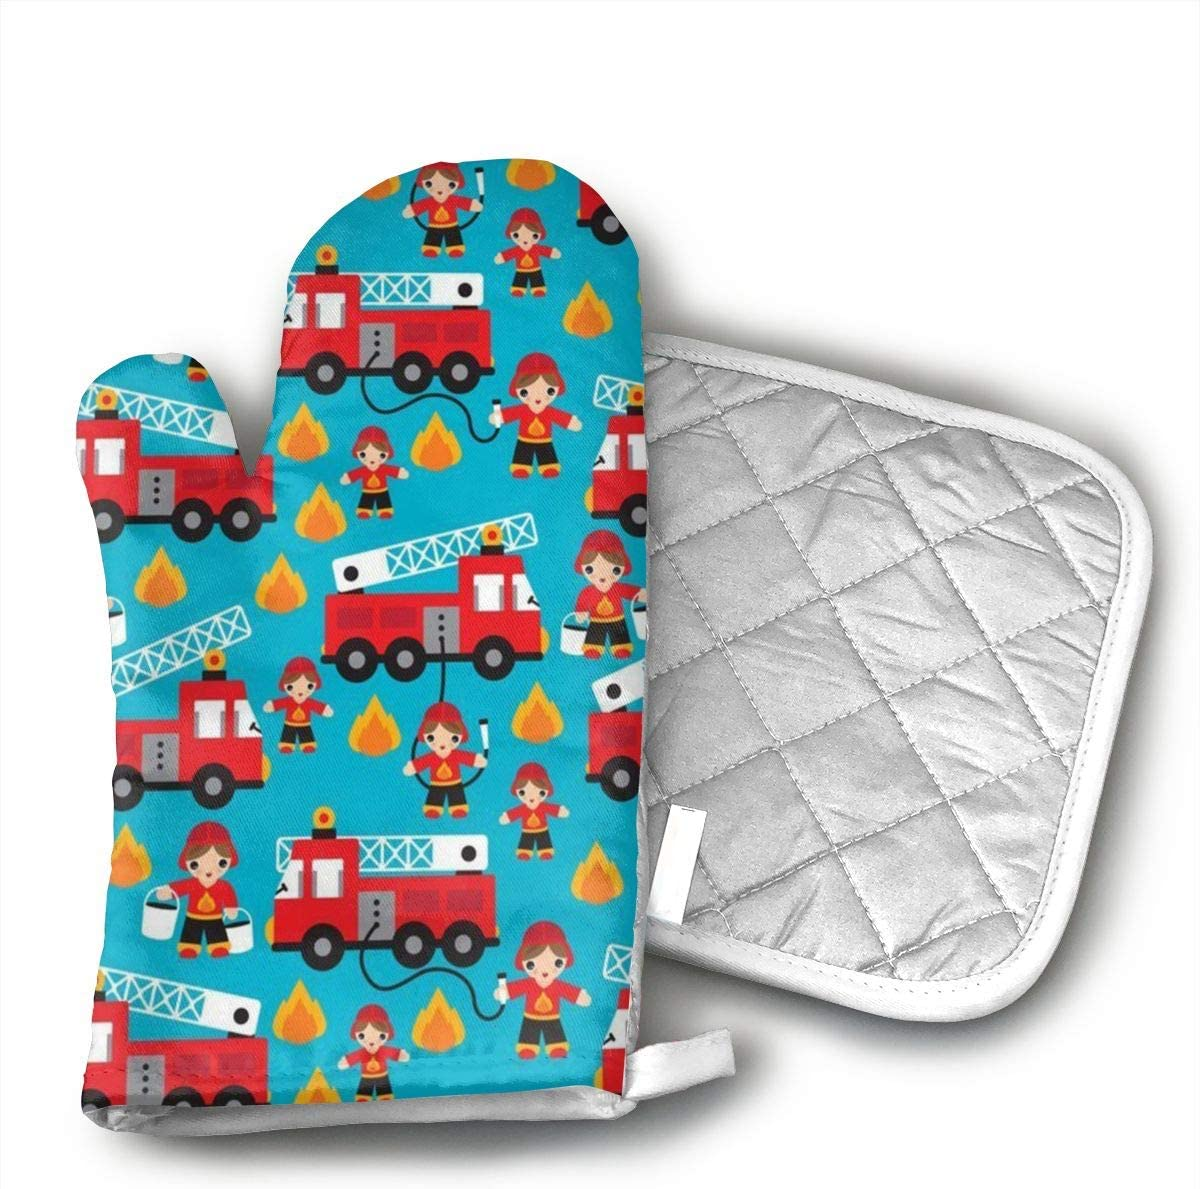 Star Blue Design Fire Truck and Hero Boys Car Oven Mitts & Heat Resistant Pot Holder - with Polyester Cotton Non-Slip Grip, Best Used As Baking, Grilling, BBQ, Cooking, Kitchen Or Oven Gloves